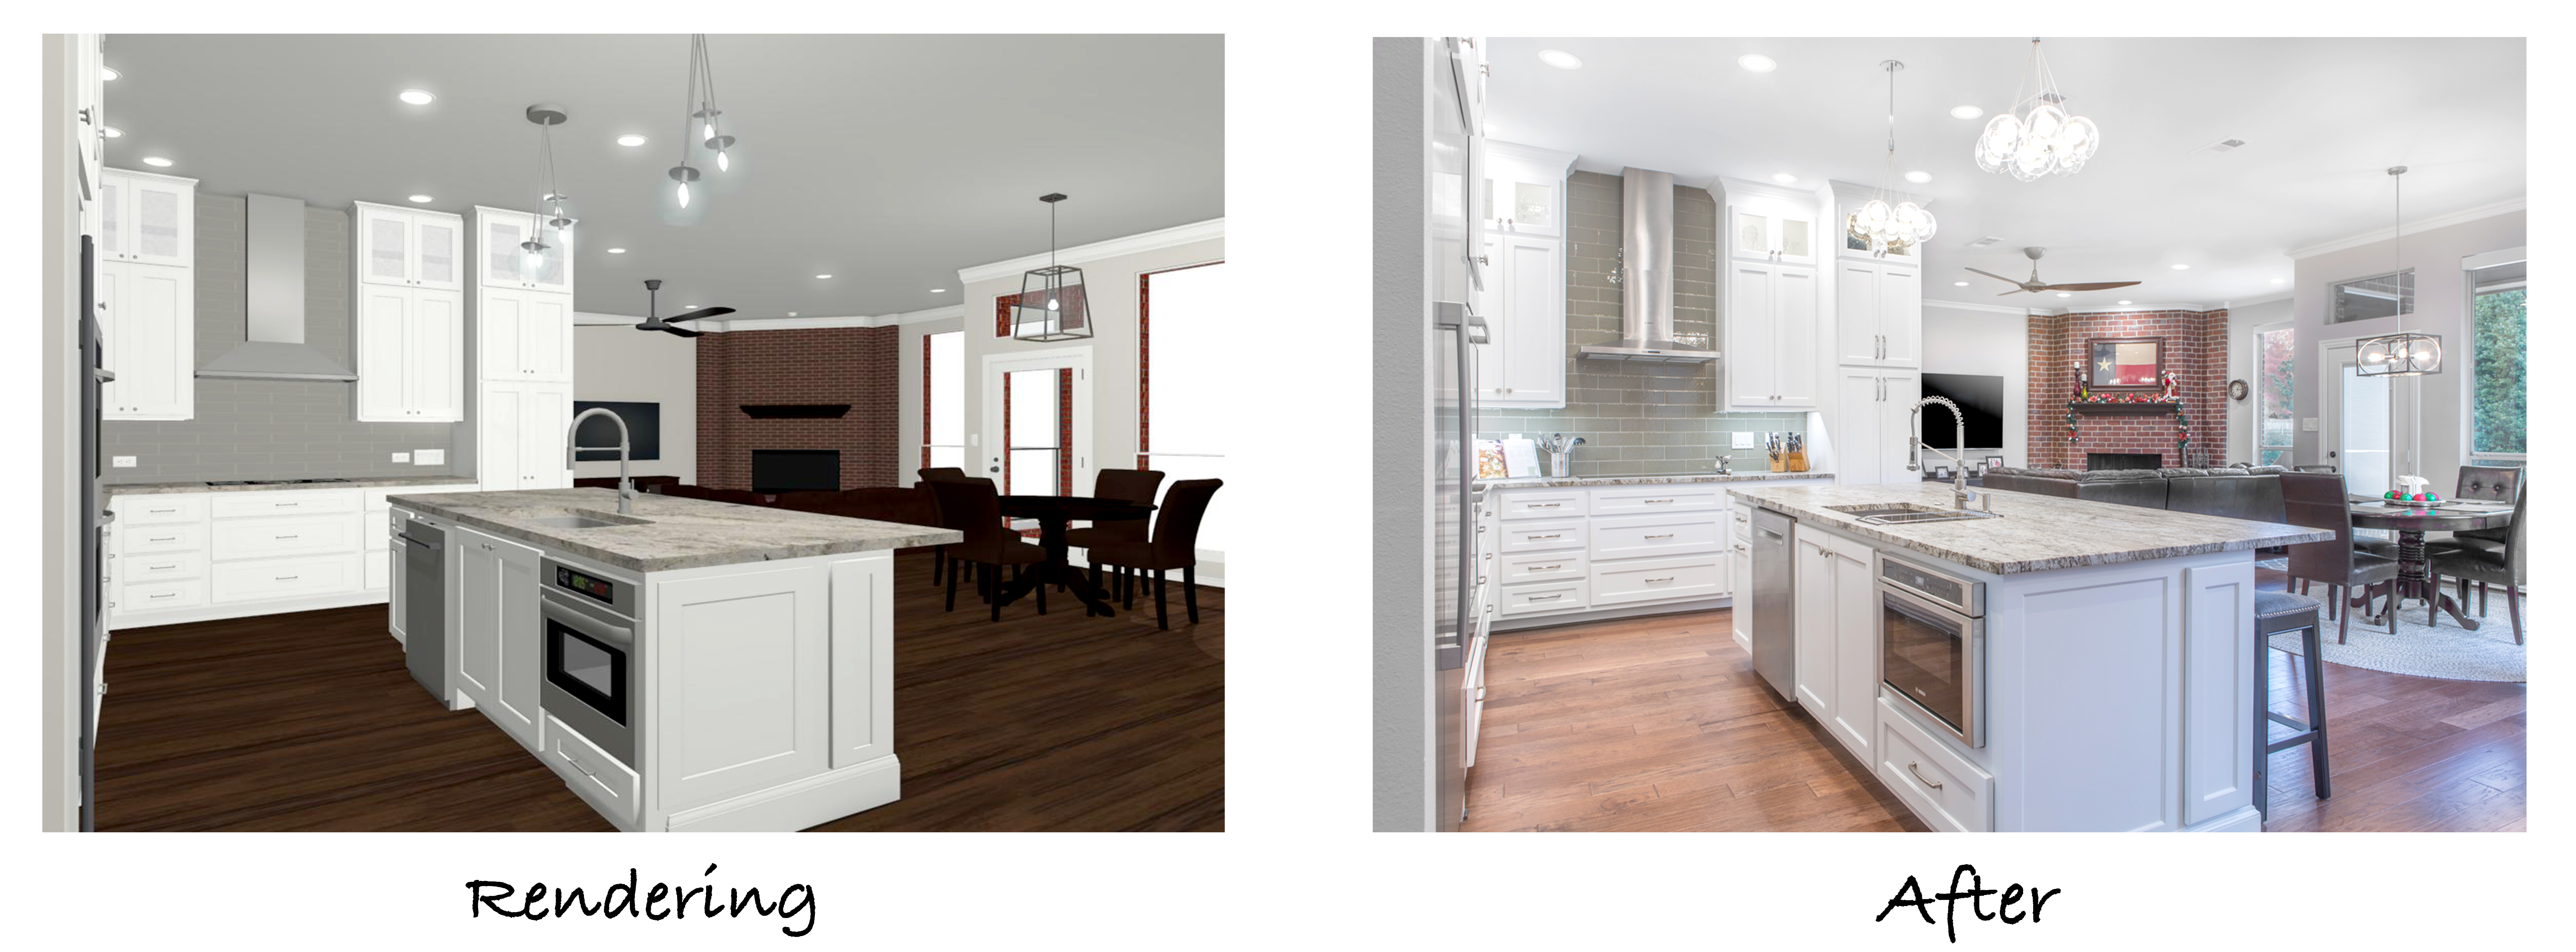 A 3-D rendering of the proposed changes for the kitchen and the final photo of the remodeled kitchen.